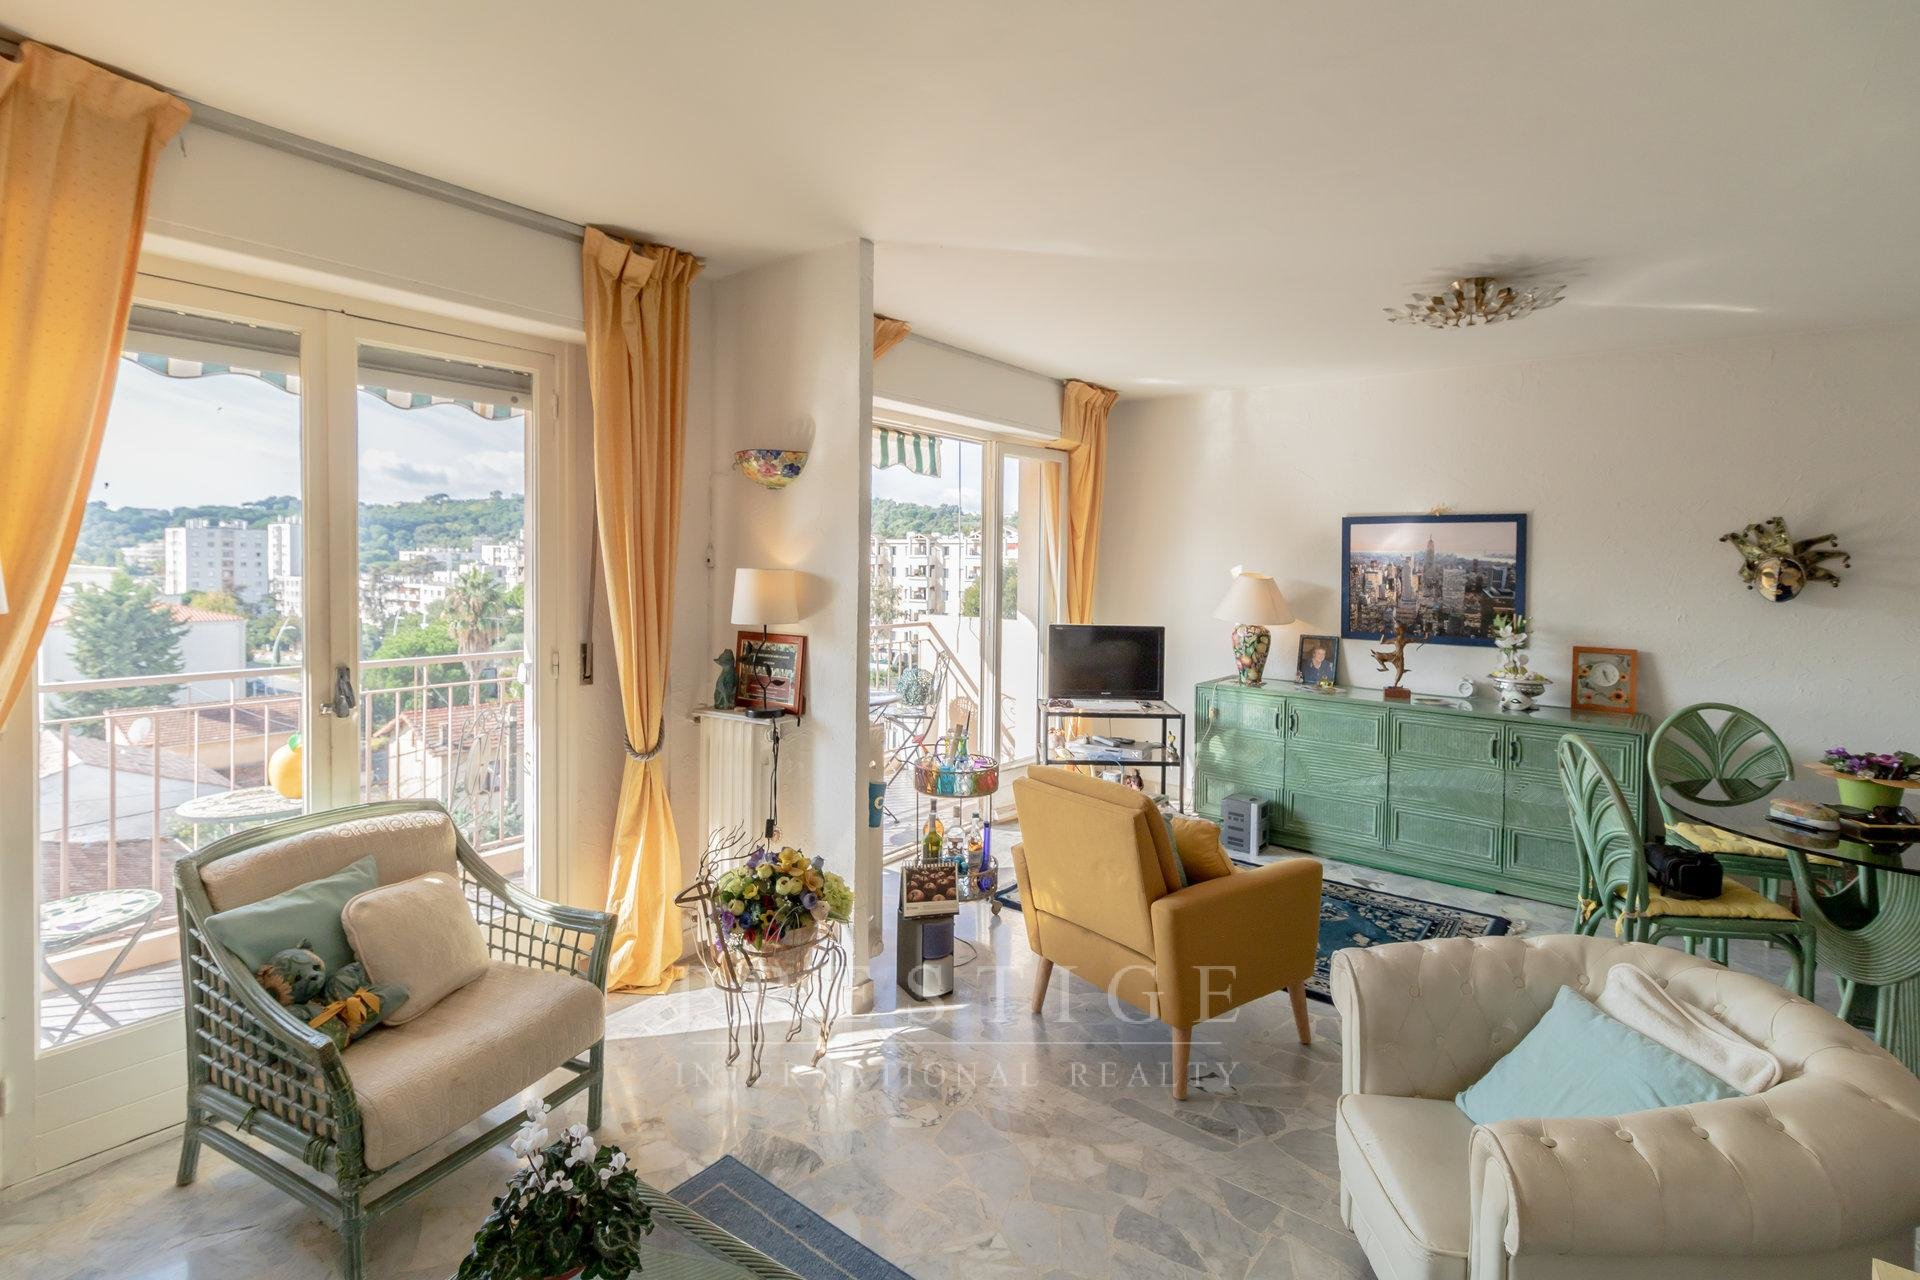 Cannes, 2 bedrooms, cellar & parking , OCCUPIED LIFE ANNUITY